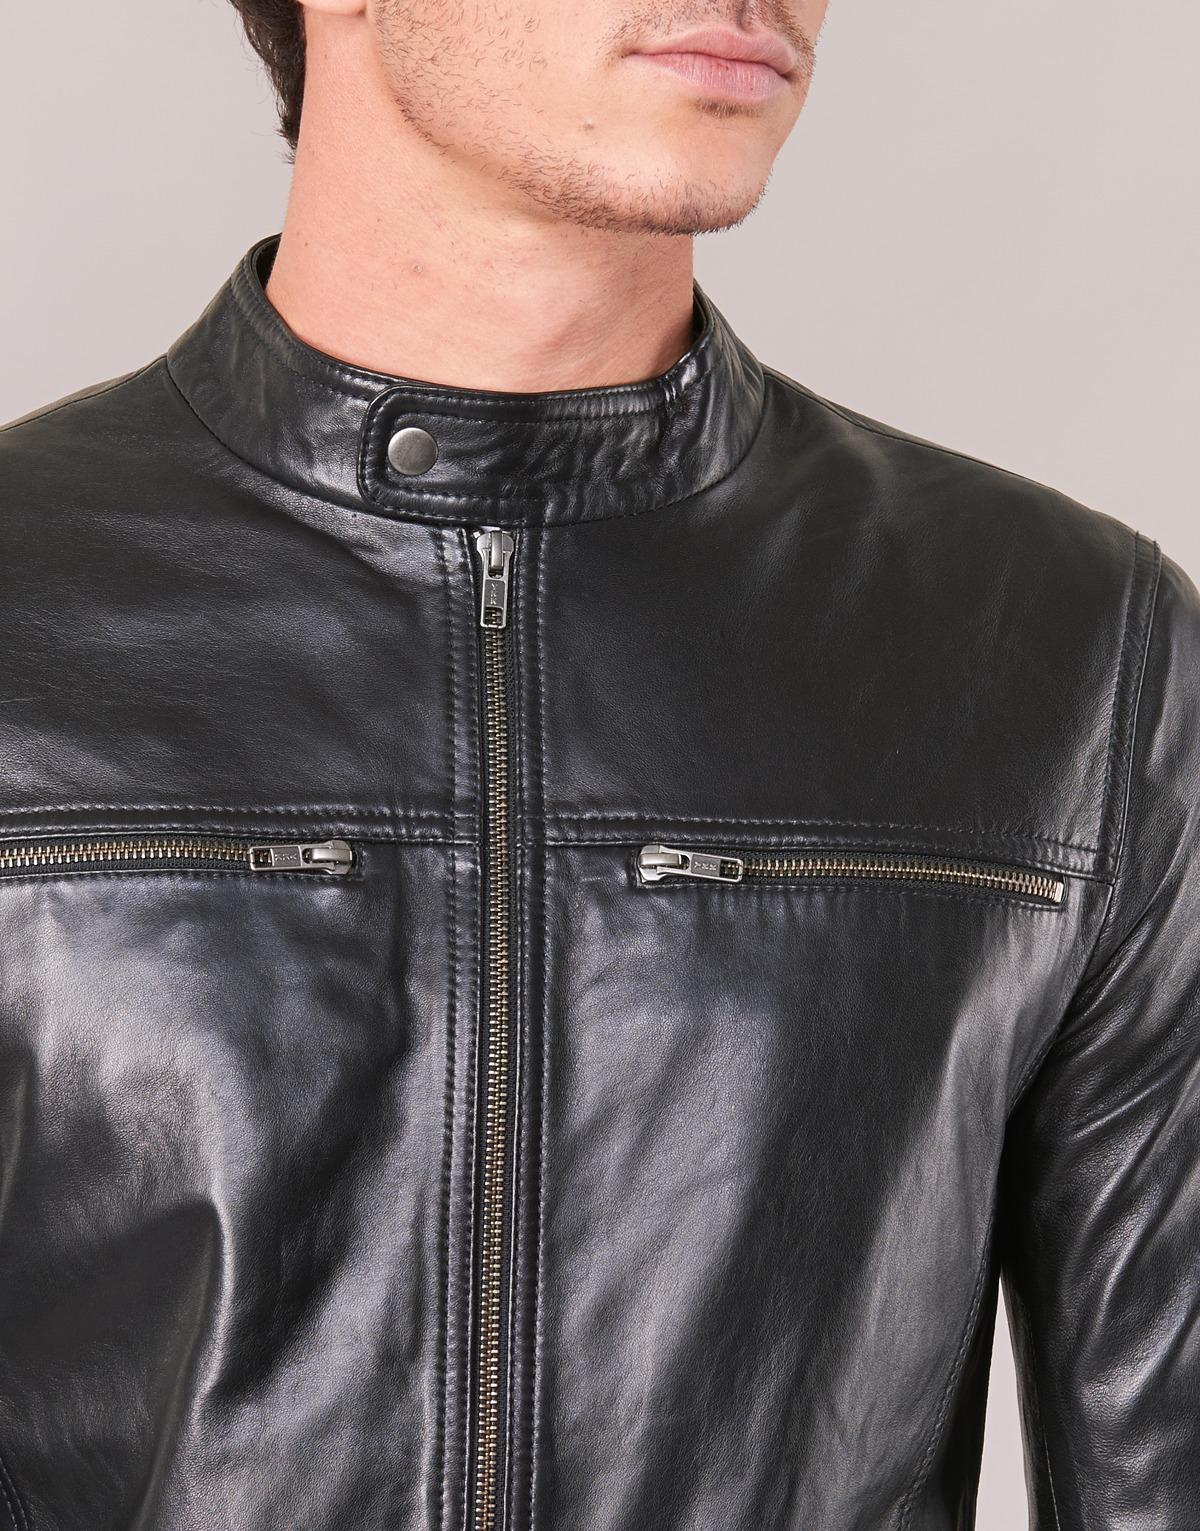 Casual Attitude Ihexo Leather Jacket in Black for Men - Save 6%